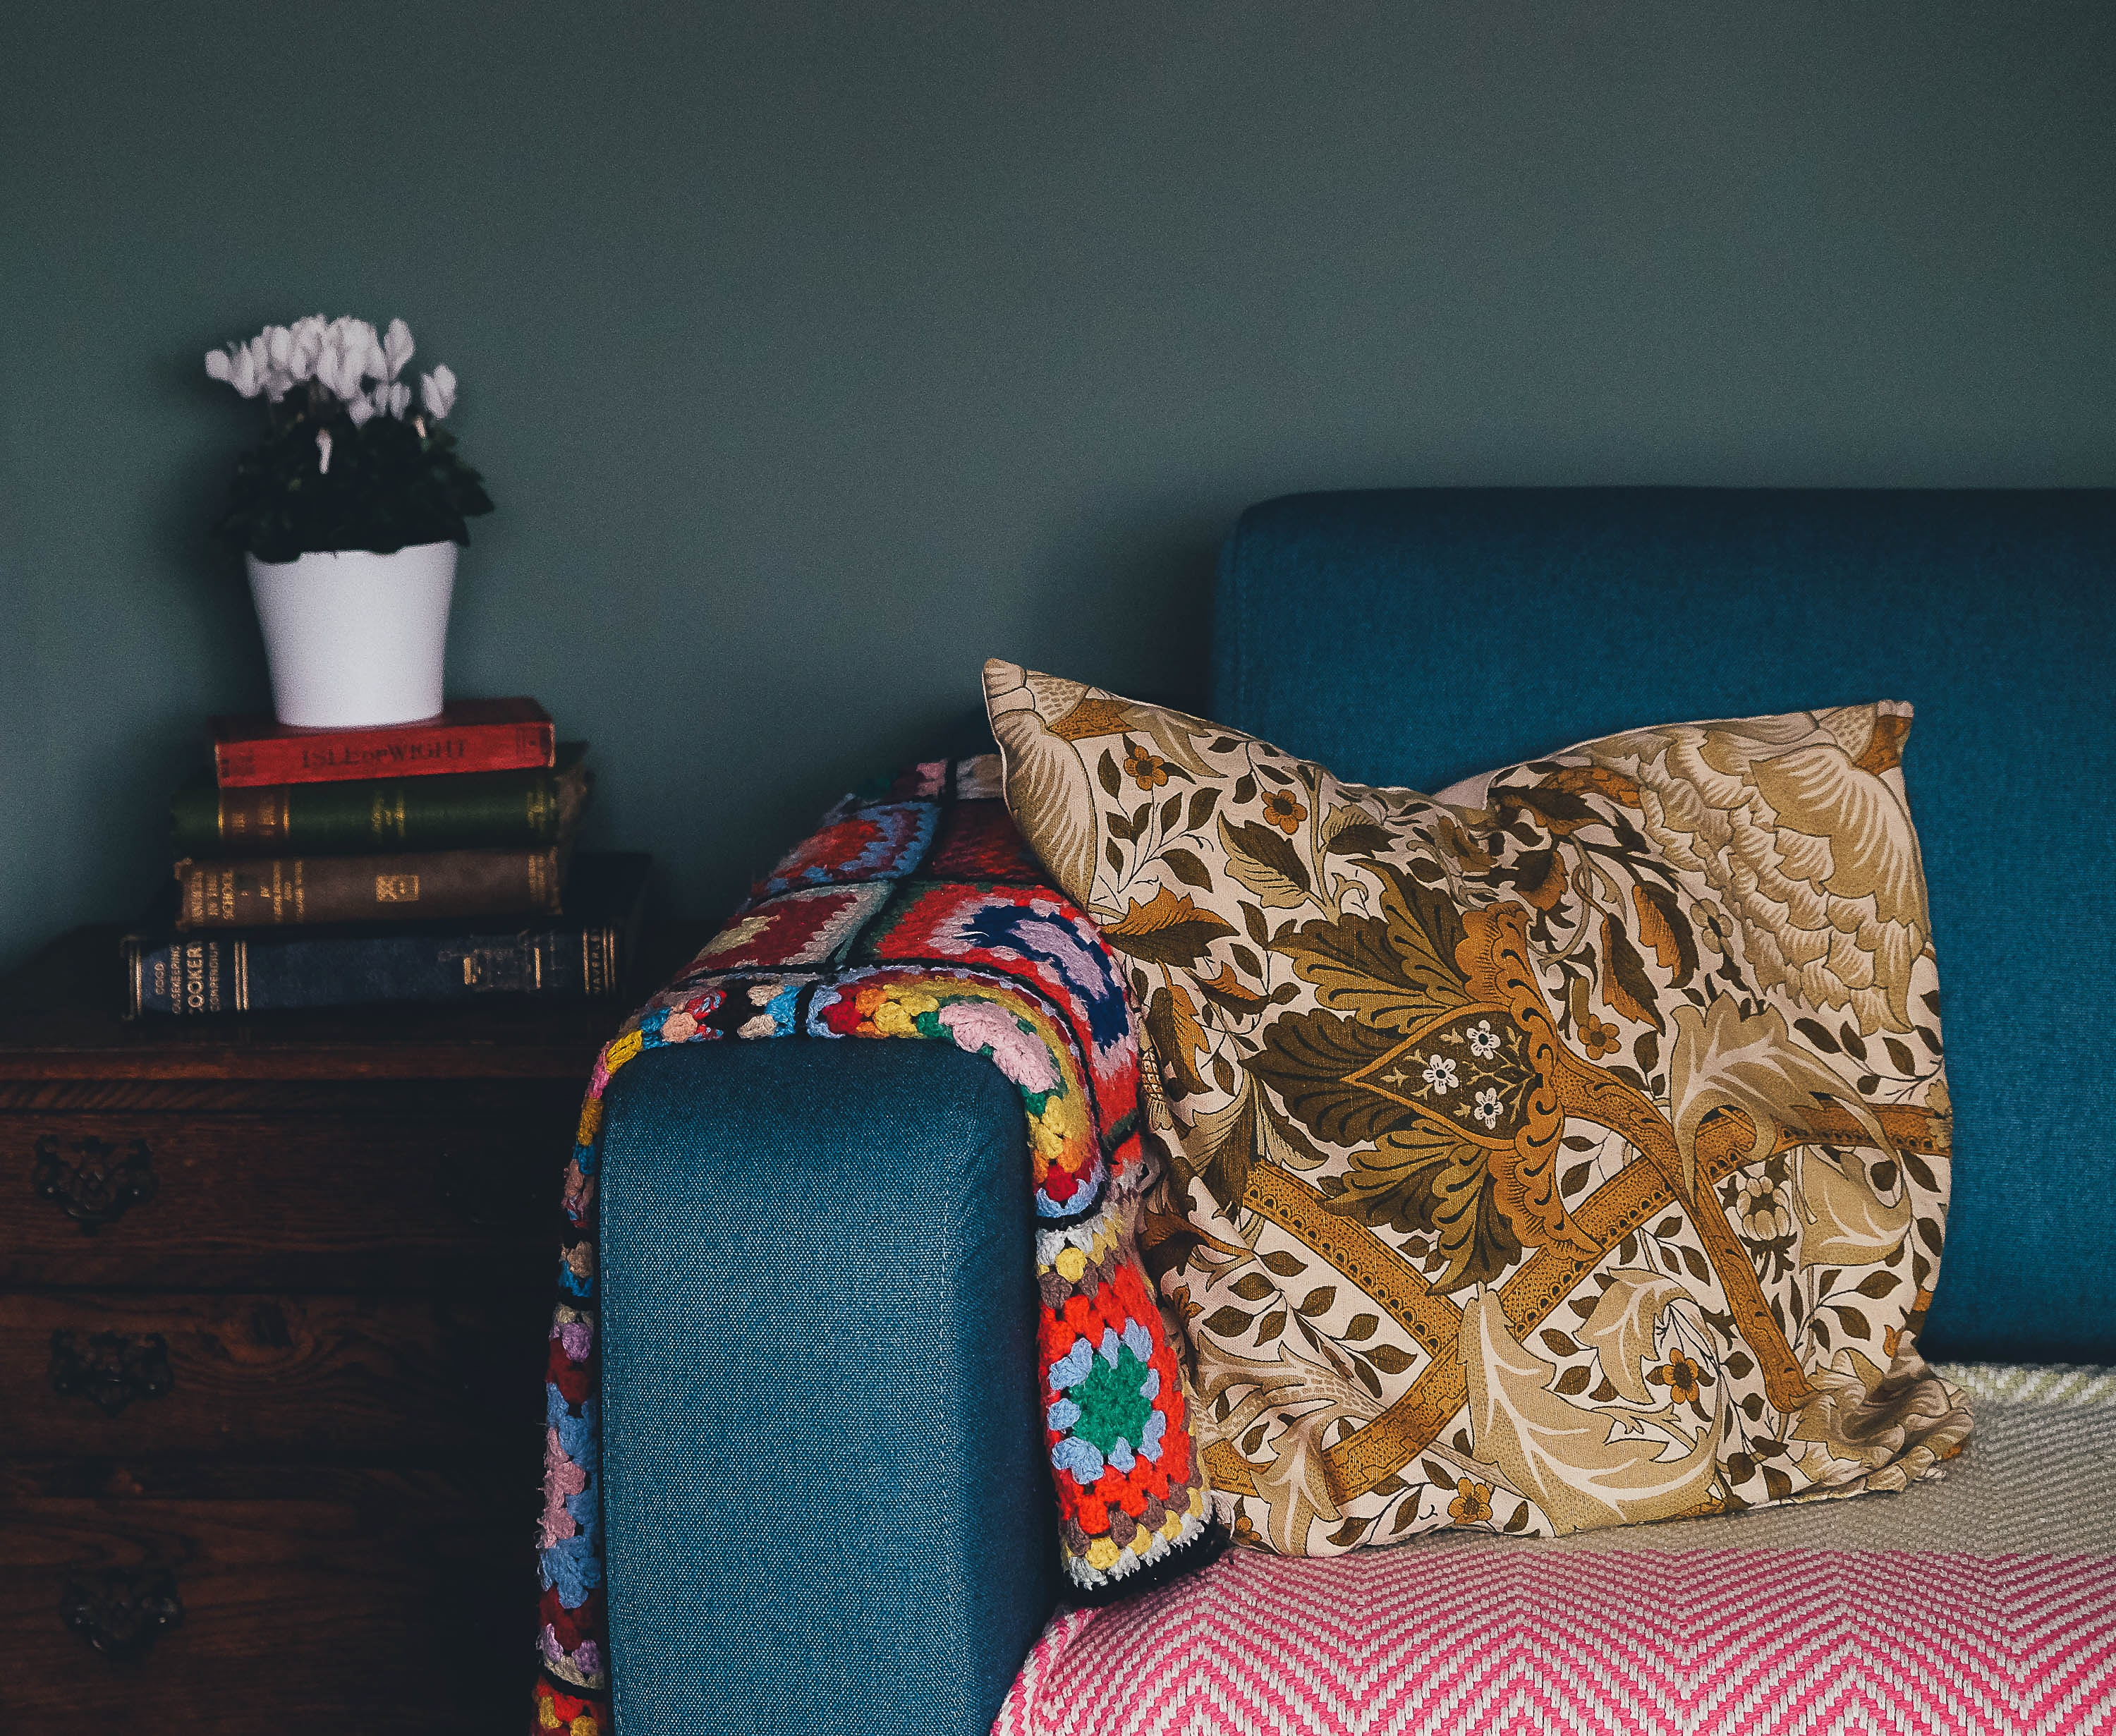 A blue sofa, colored blankets, brown patterned pillow, wooden end table, stack of books, and potted plant in a living room